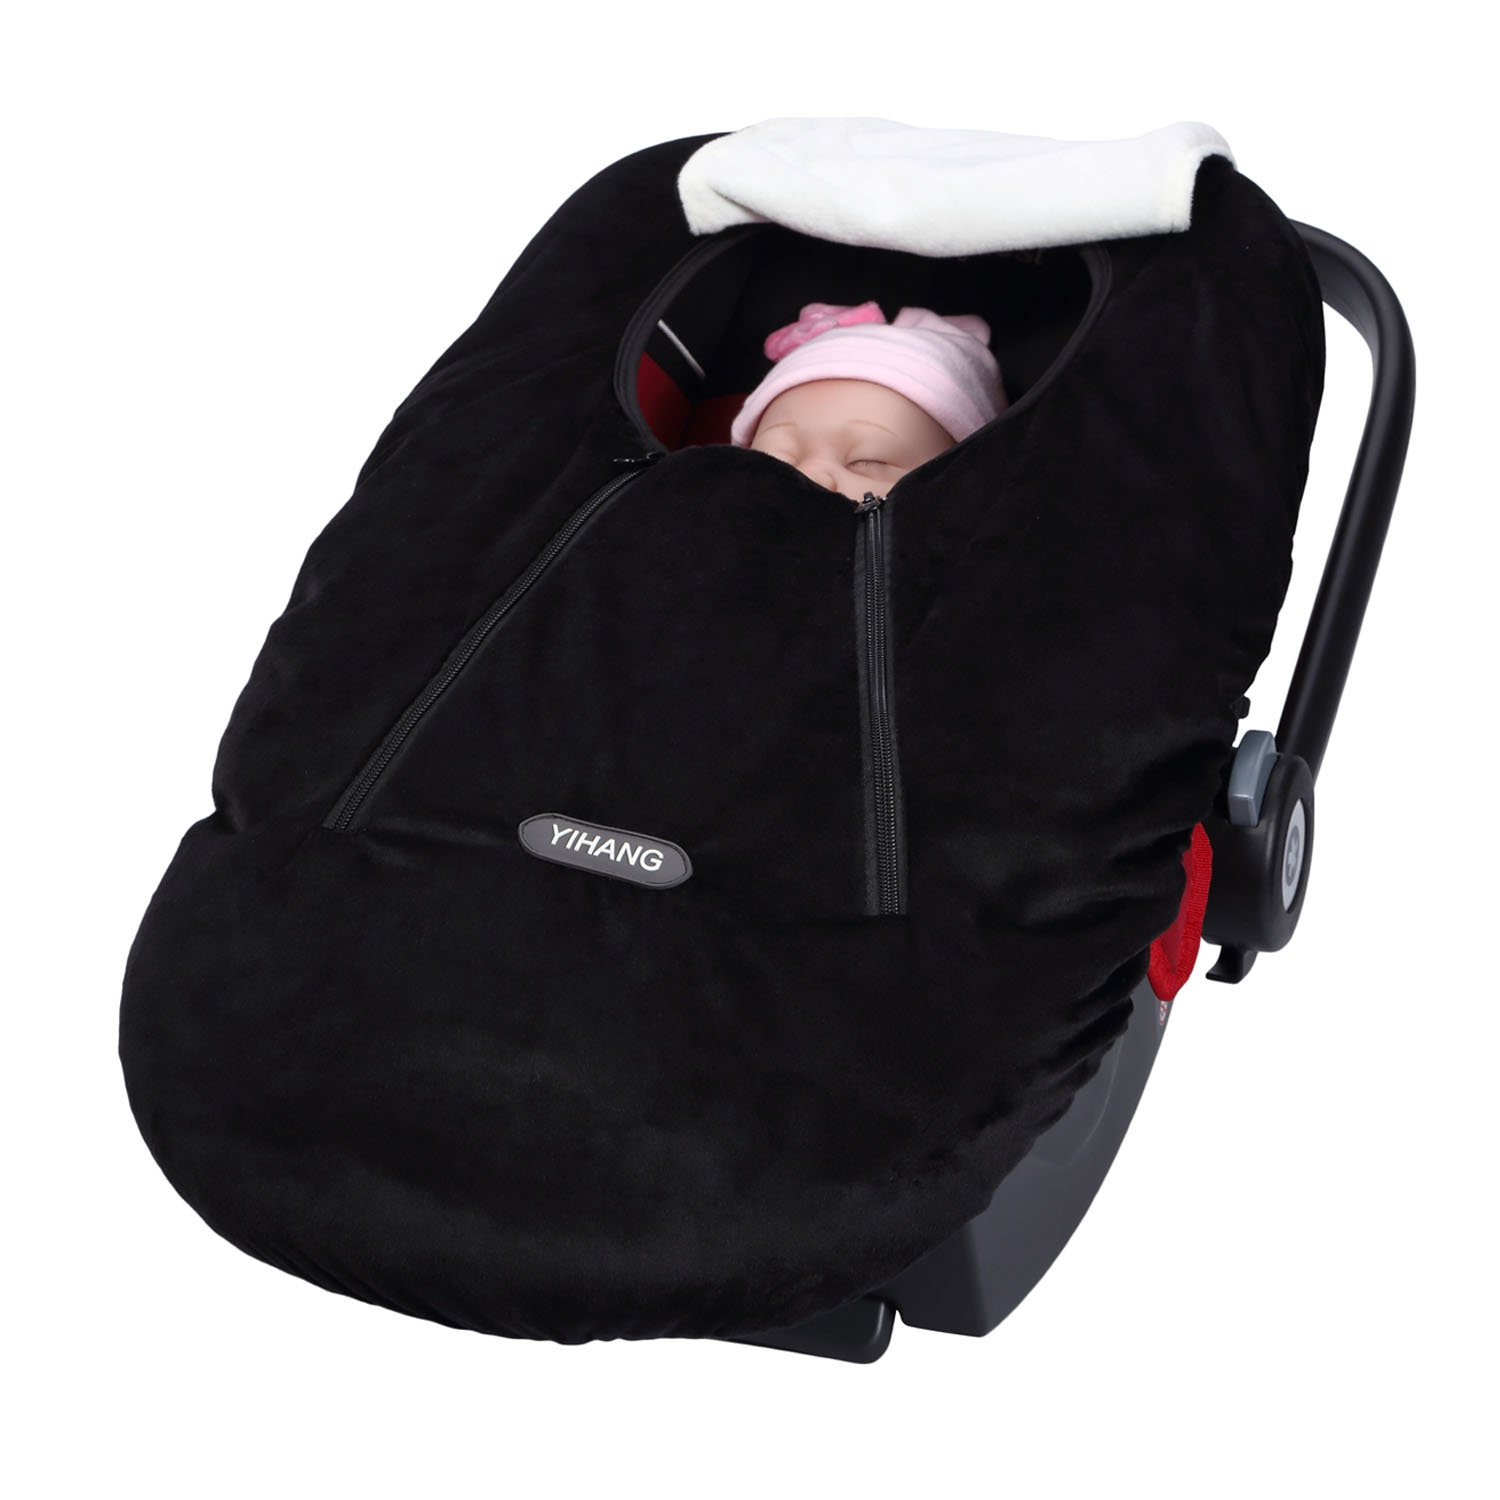 Amazon.com : YIHANG Baby Car Seat Covers for and Boys, Infant ...